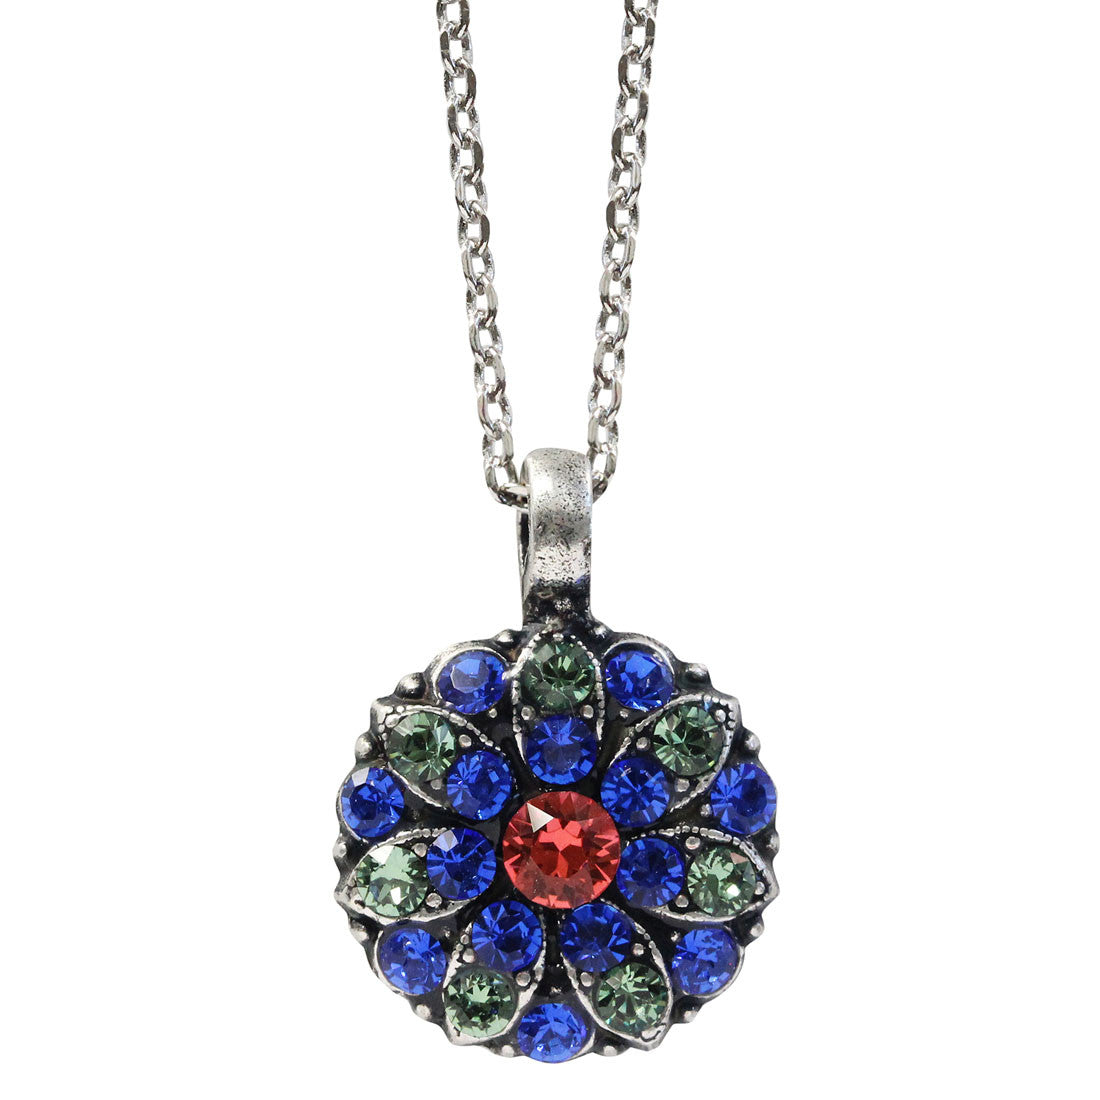 "Mariana Guardian Angel Swarovski Crystal Pendant Necklace, 16"" Oasis 5212 432"